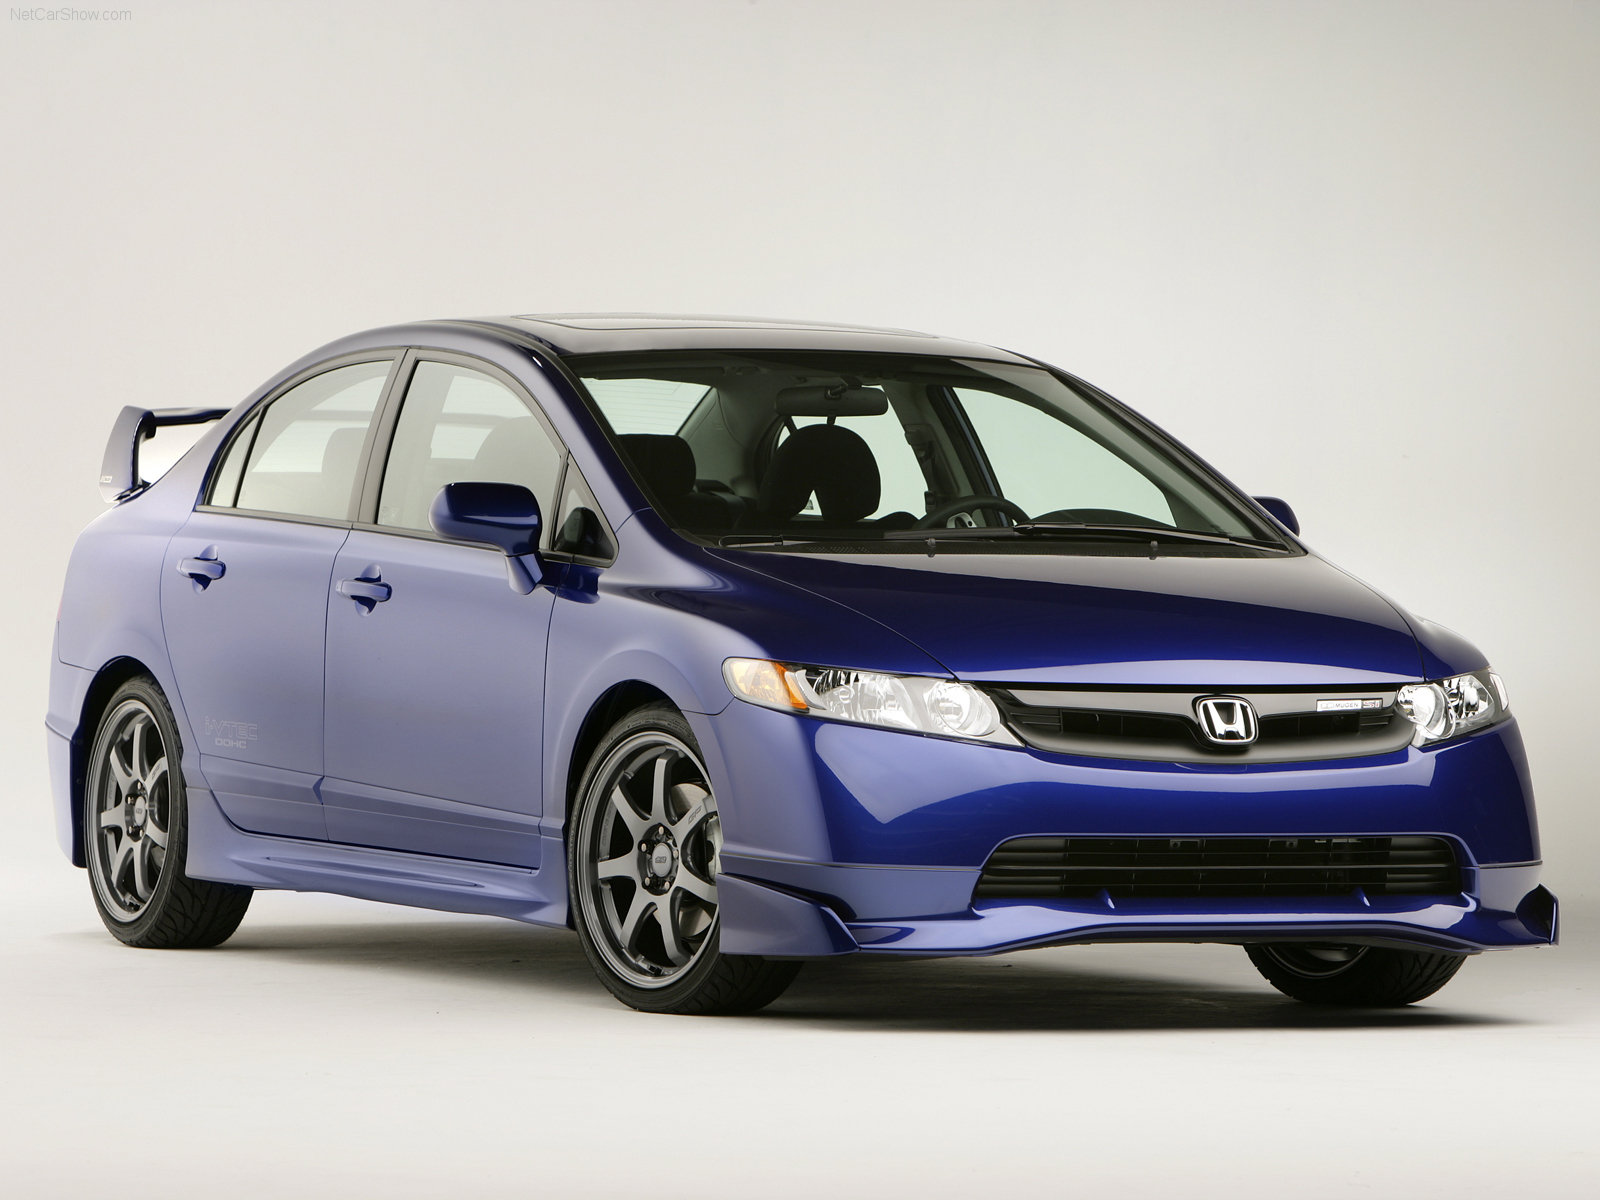 Honda Mugen Civic Si photo 39503